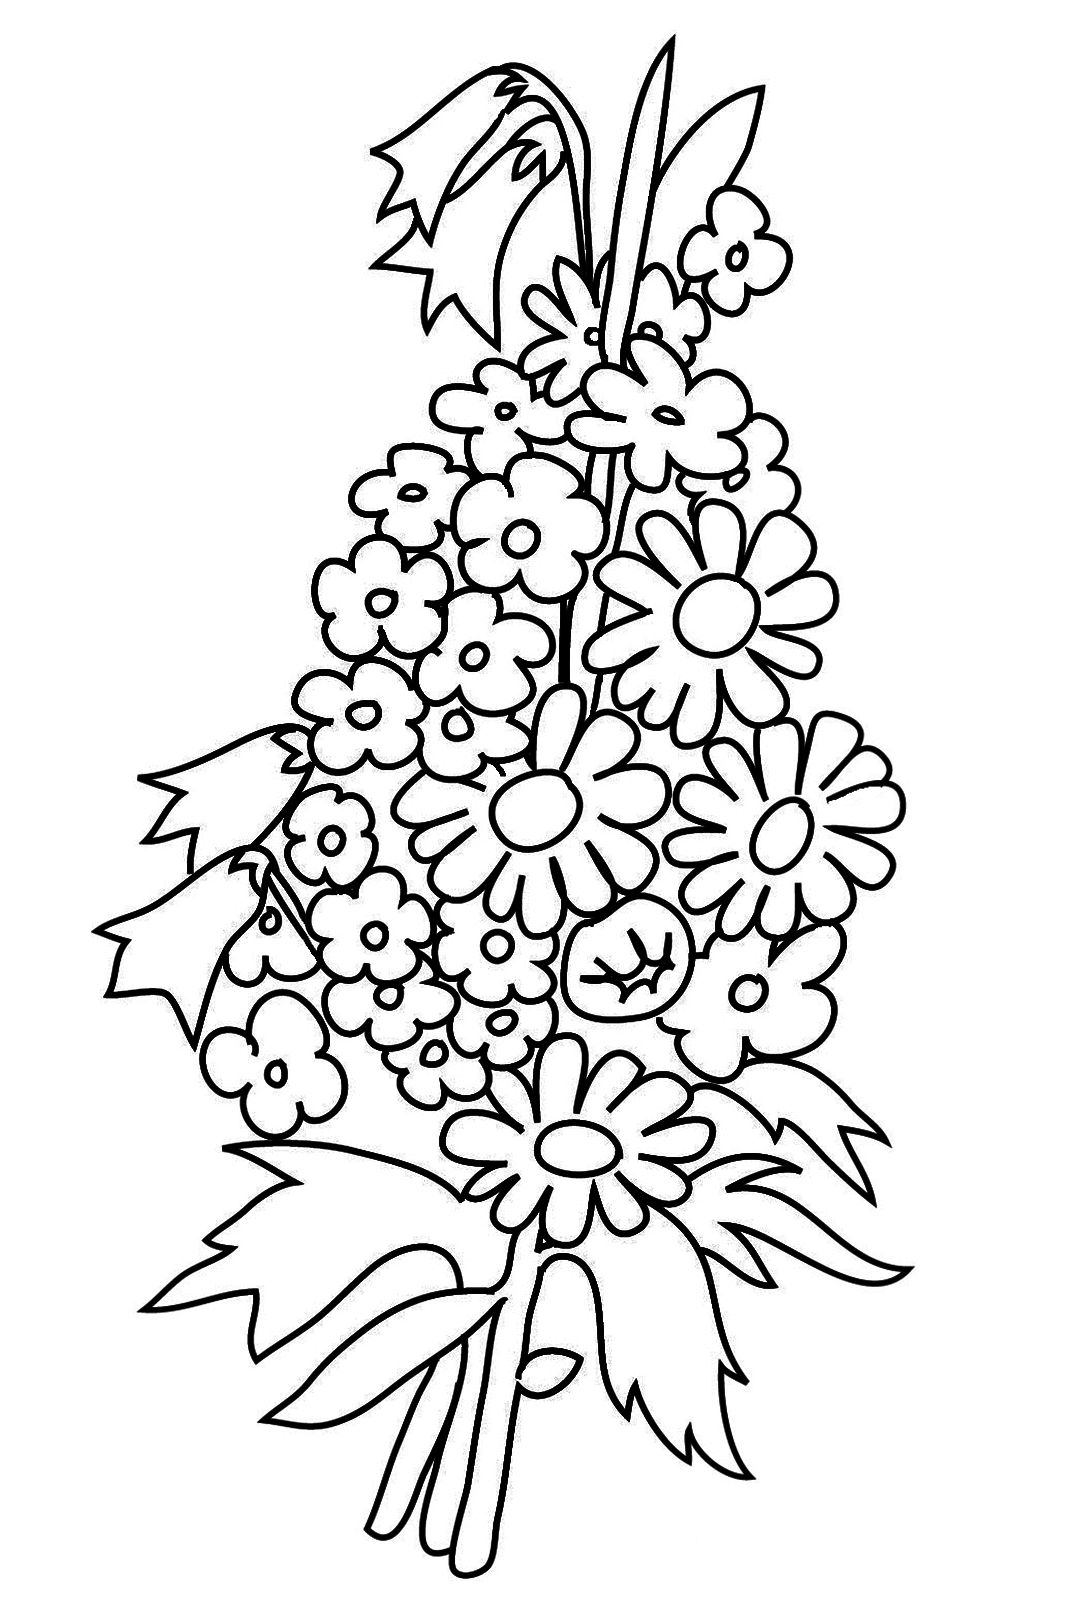 bouquet of roses coloring pages daisy bouquet coloring page pages of bouquet roses coloring